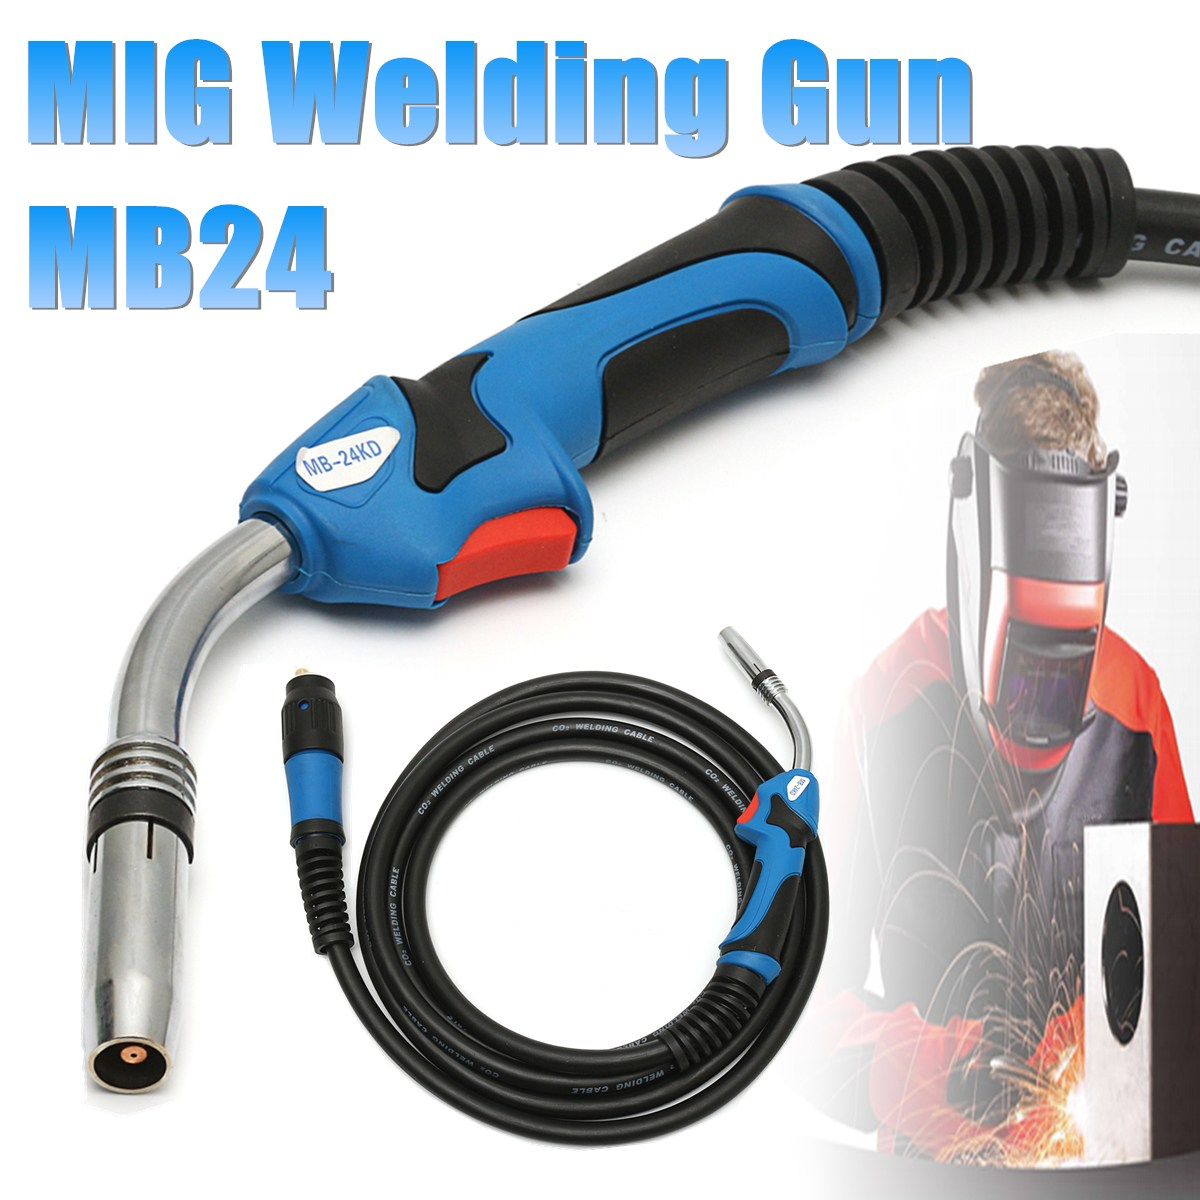 все цены на MB24 MIG Welding Gun-Torch with 5 Meter Length Lead Electric Welder Torch Stinger Parts